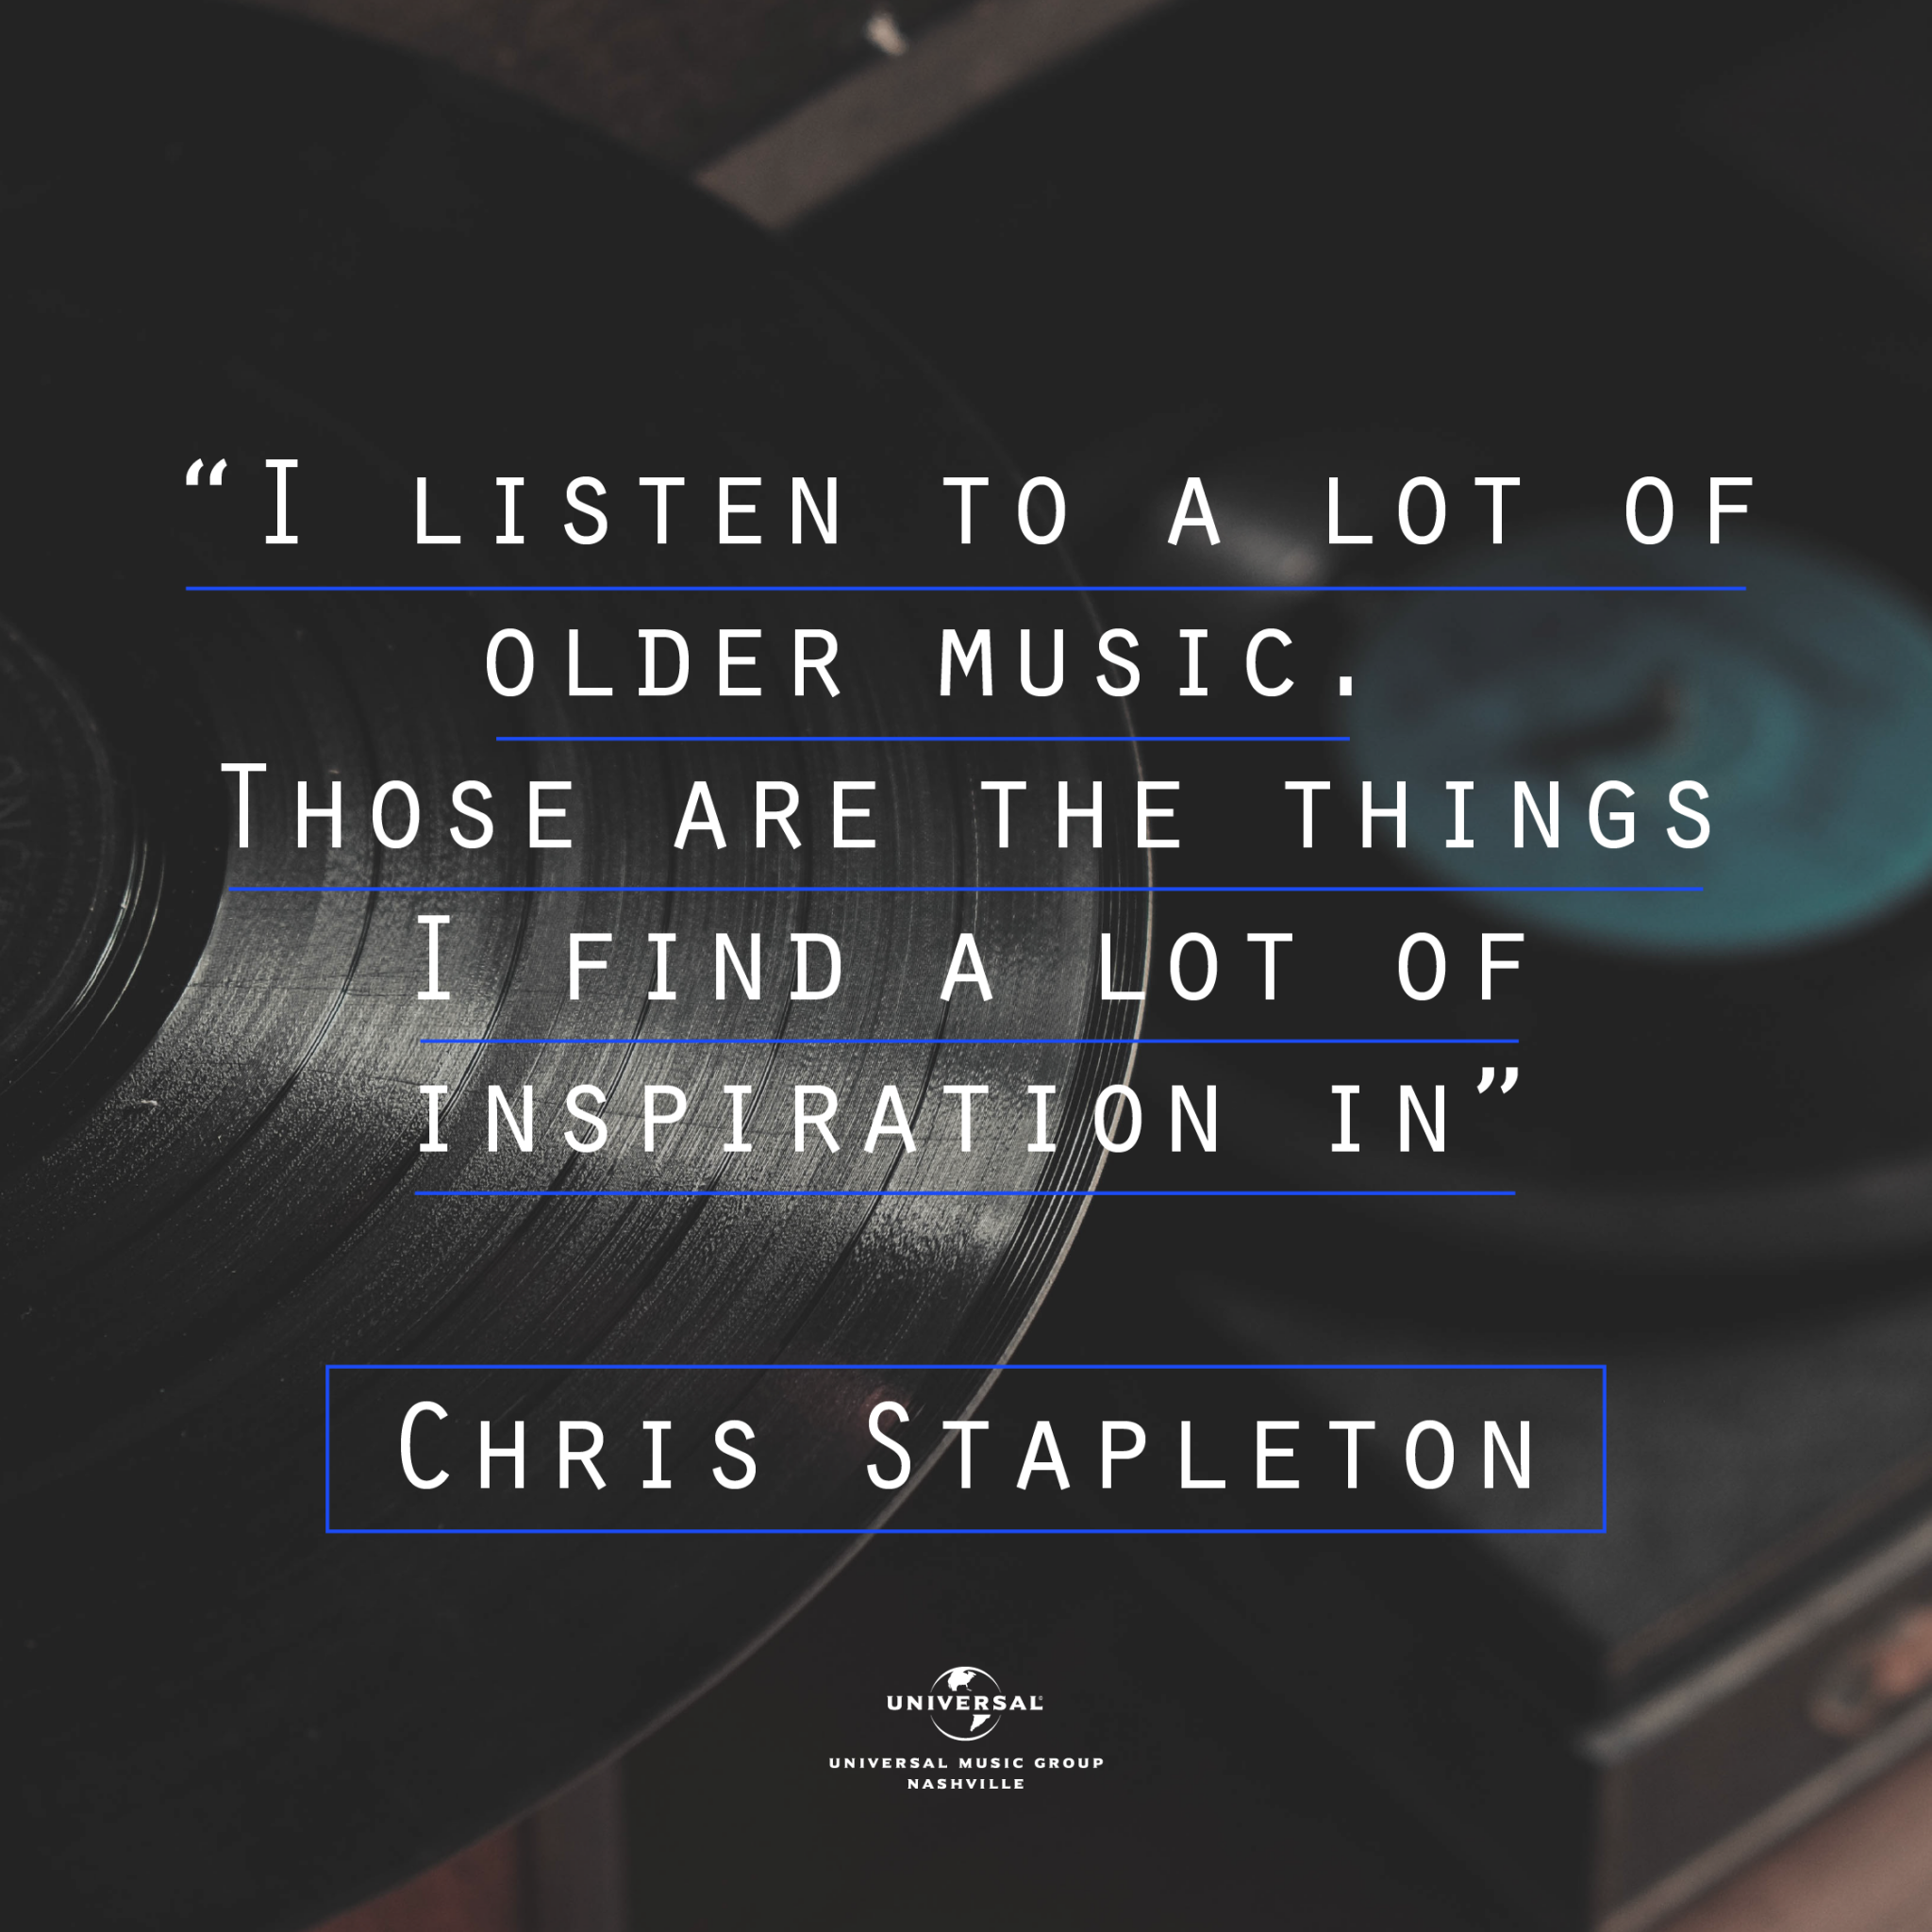 """""""I listen to a lot of older music. Those are the things I find a lof of inspiration in."""" Chris Stapleton"""